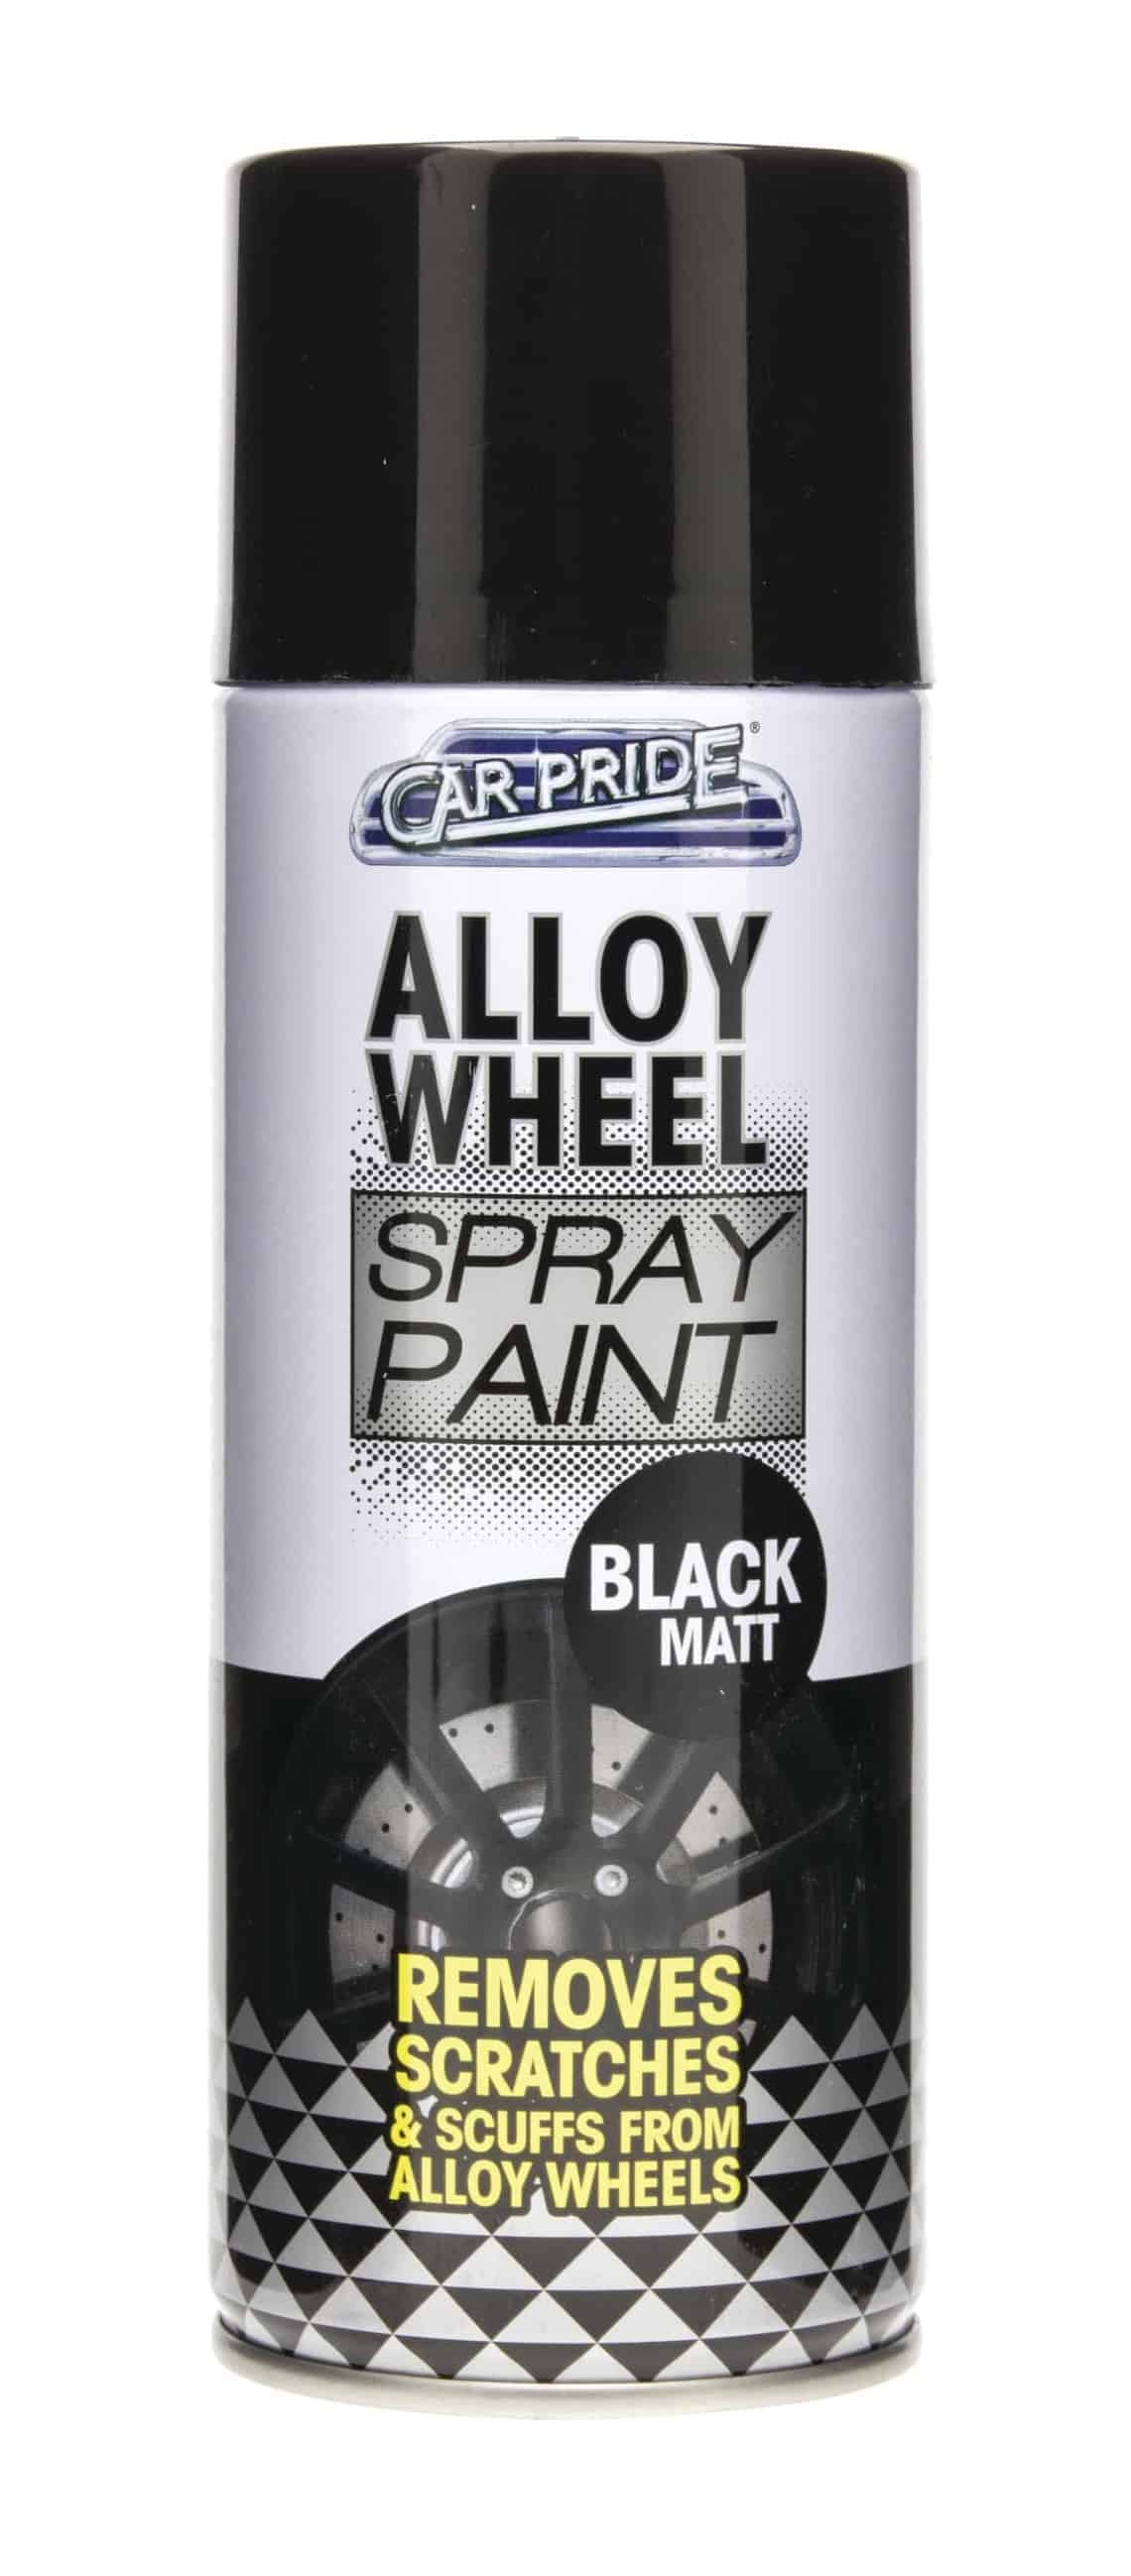 Car Pride 400Ml Alloy Wheel Spray Black Matt